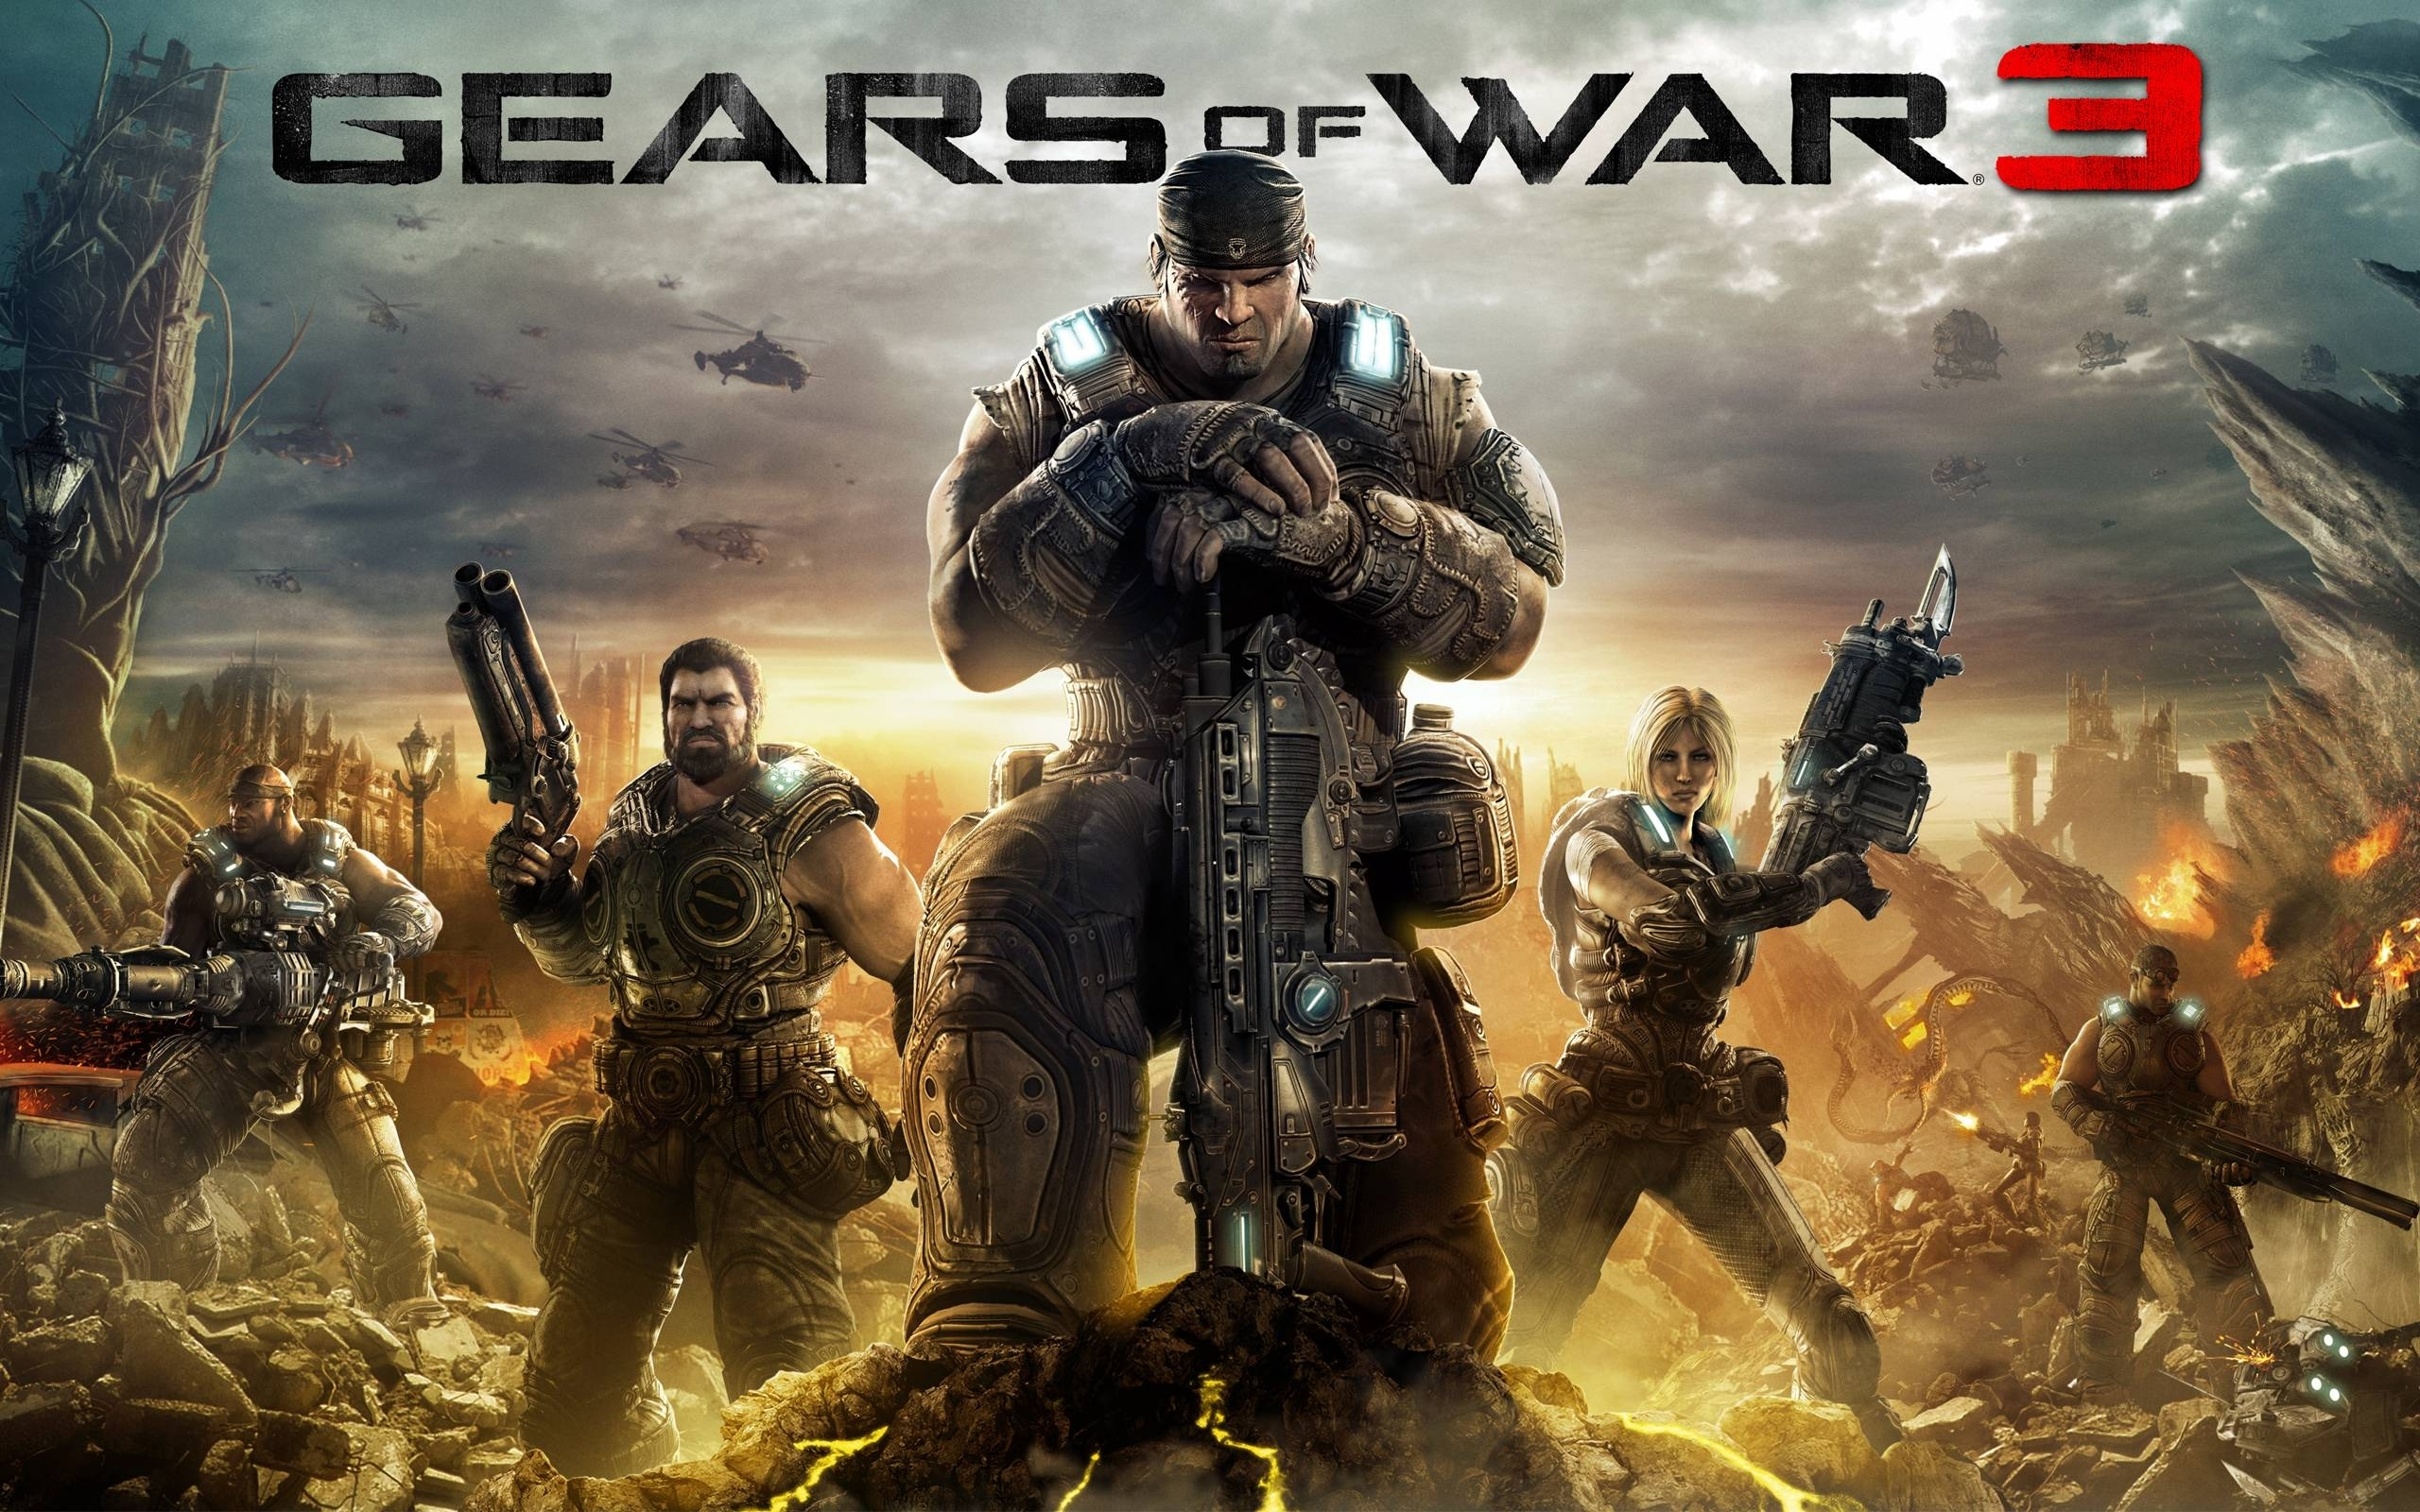 10 Top Gears Of War Wallpaper Hd 1080P FULL HD 1920×1080 For PC Background